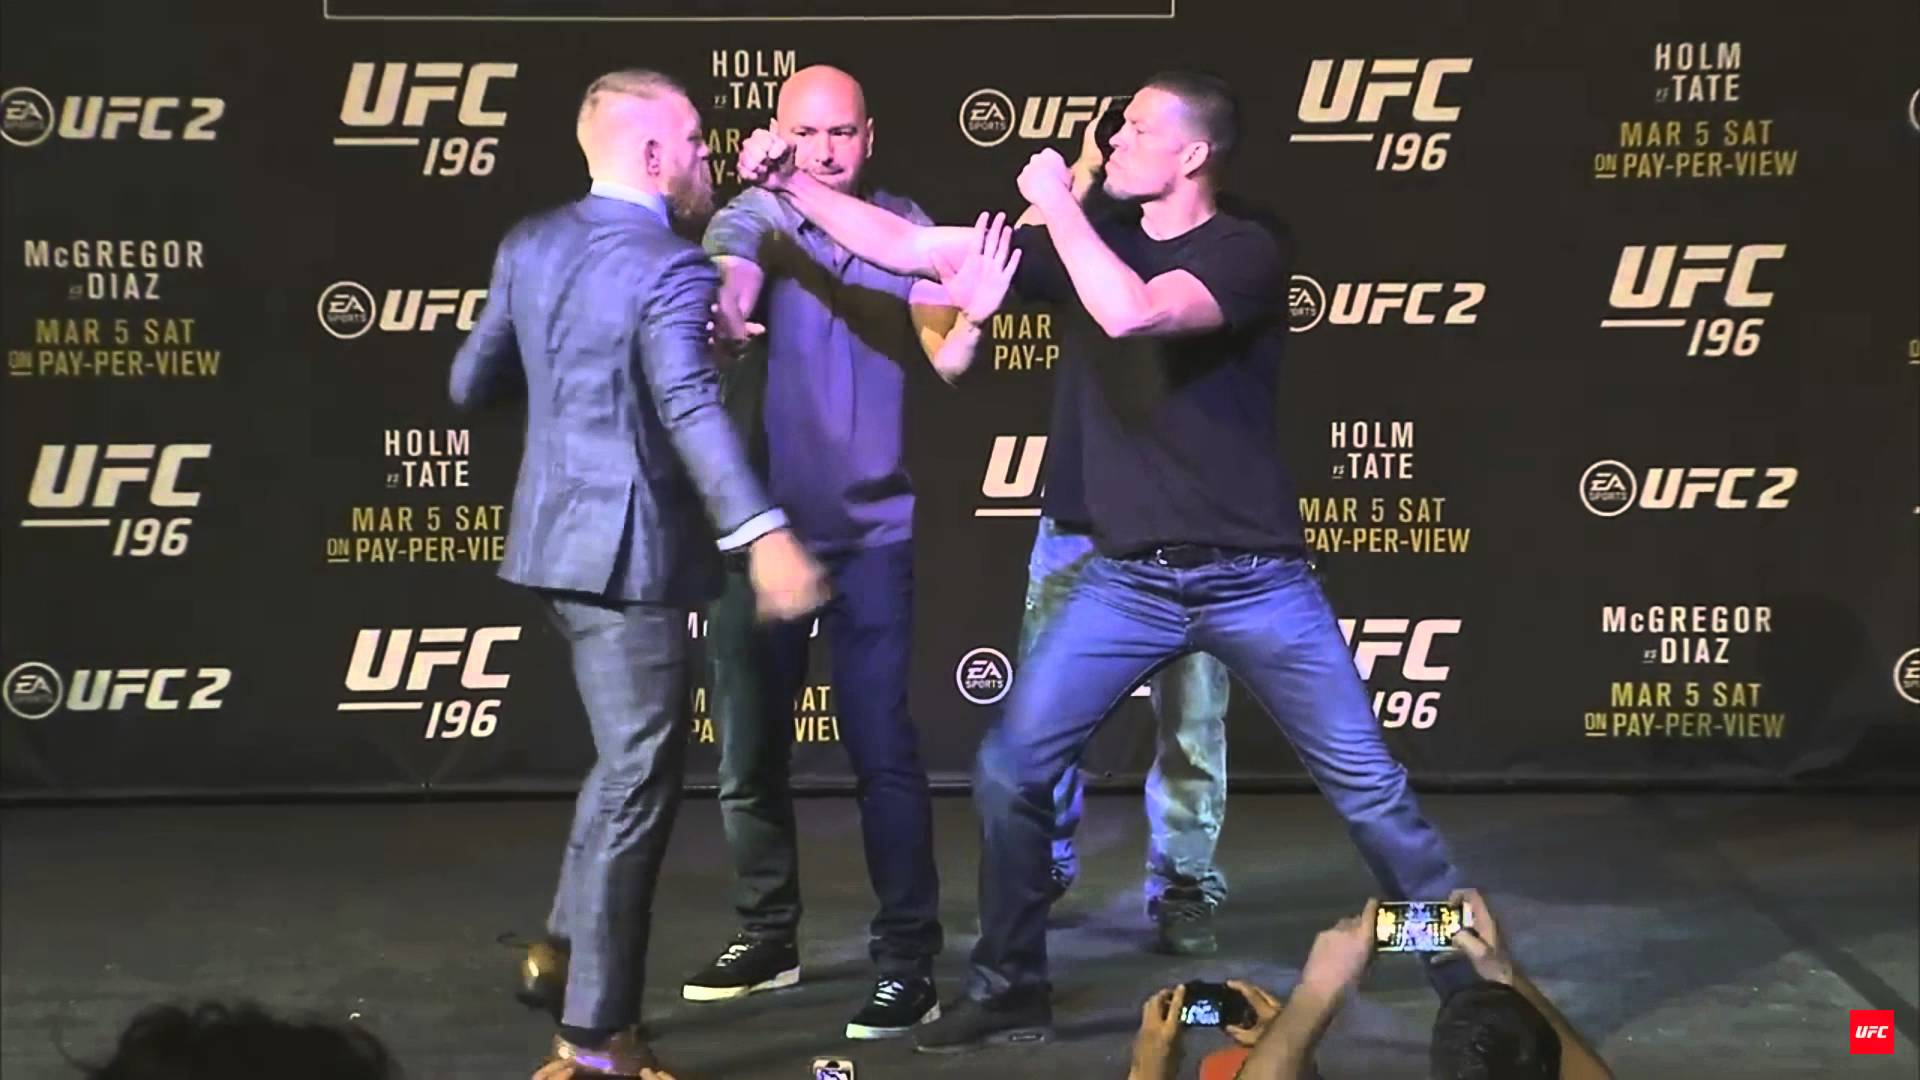 Conor McGregor swings at Nick Diaz in UFC 196 face off